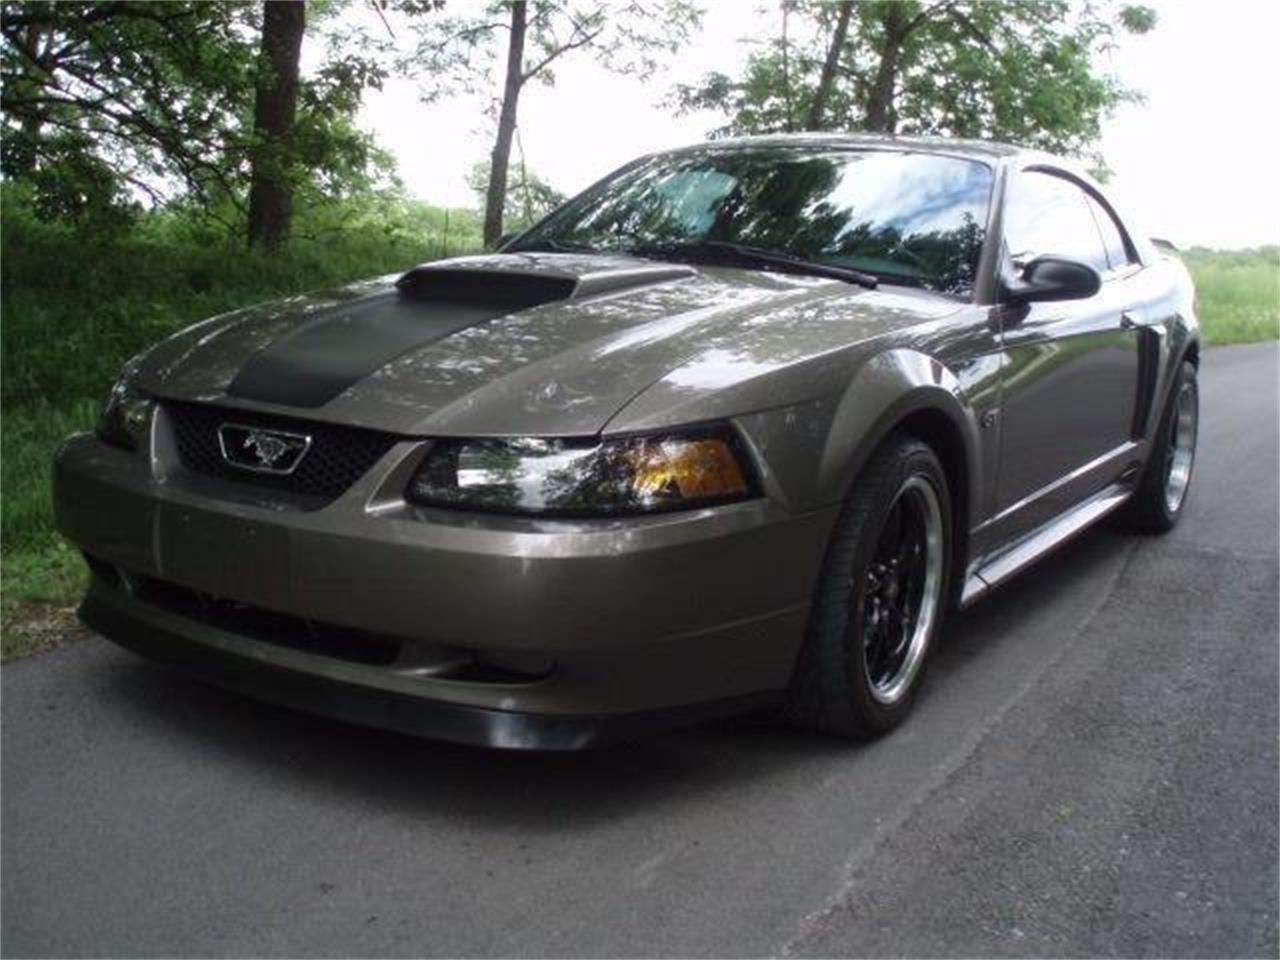 A Ford Mustang 2002